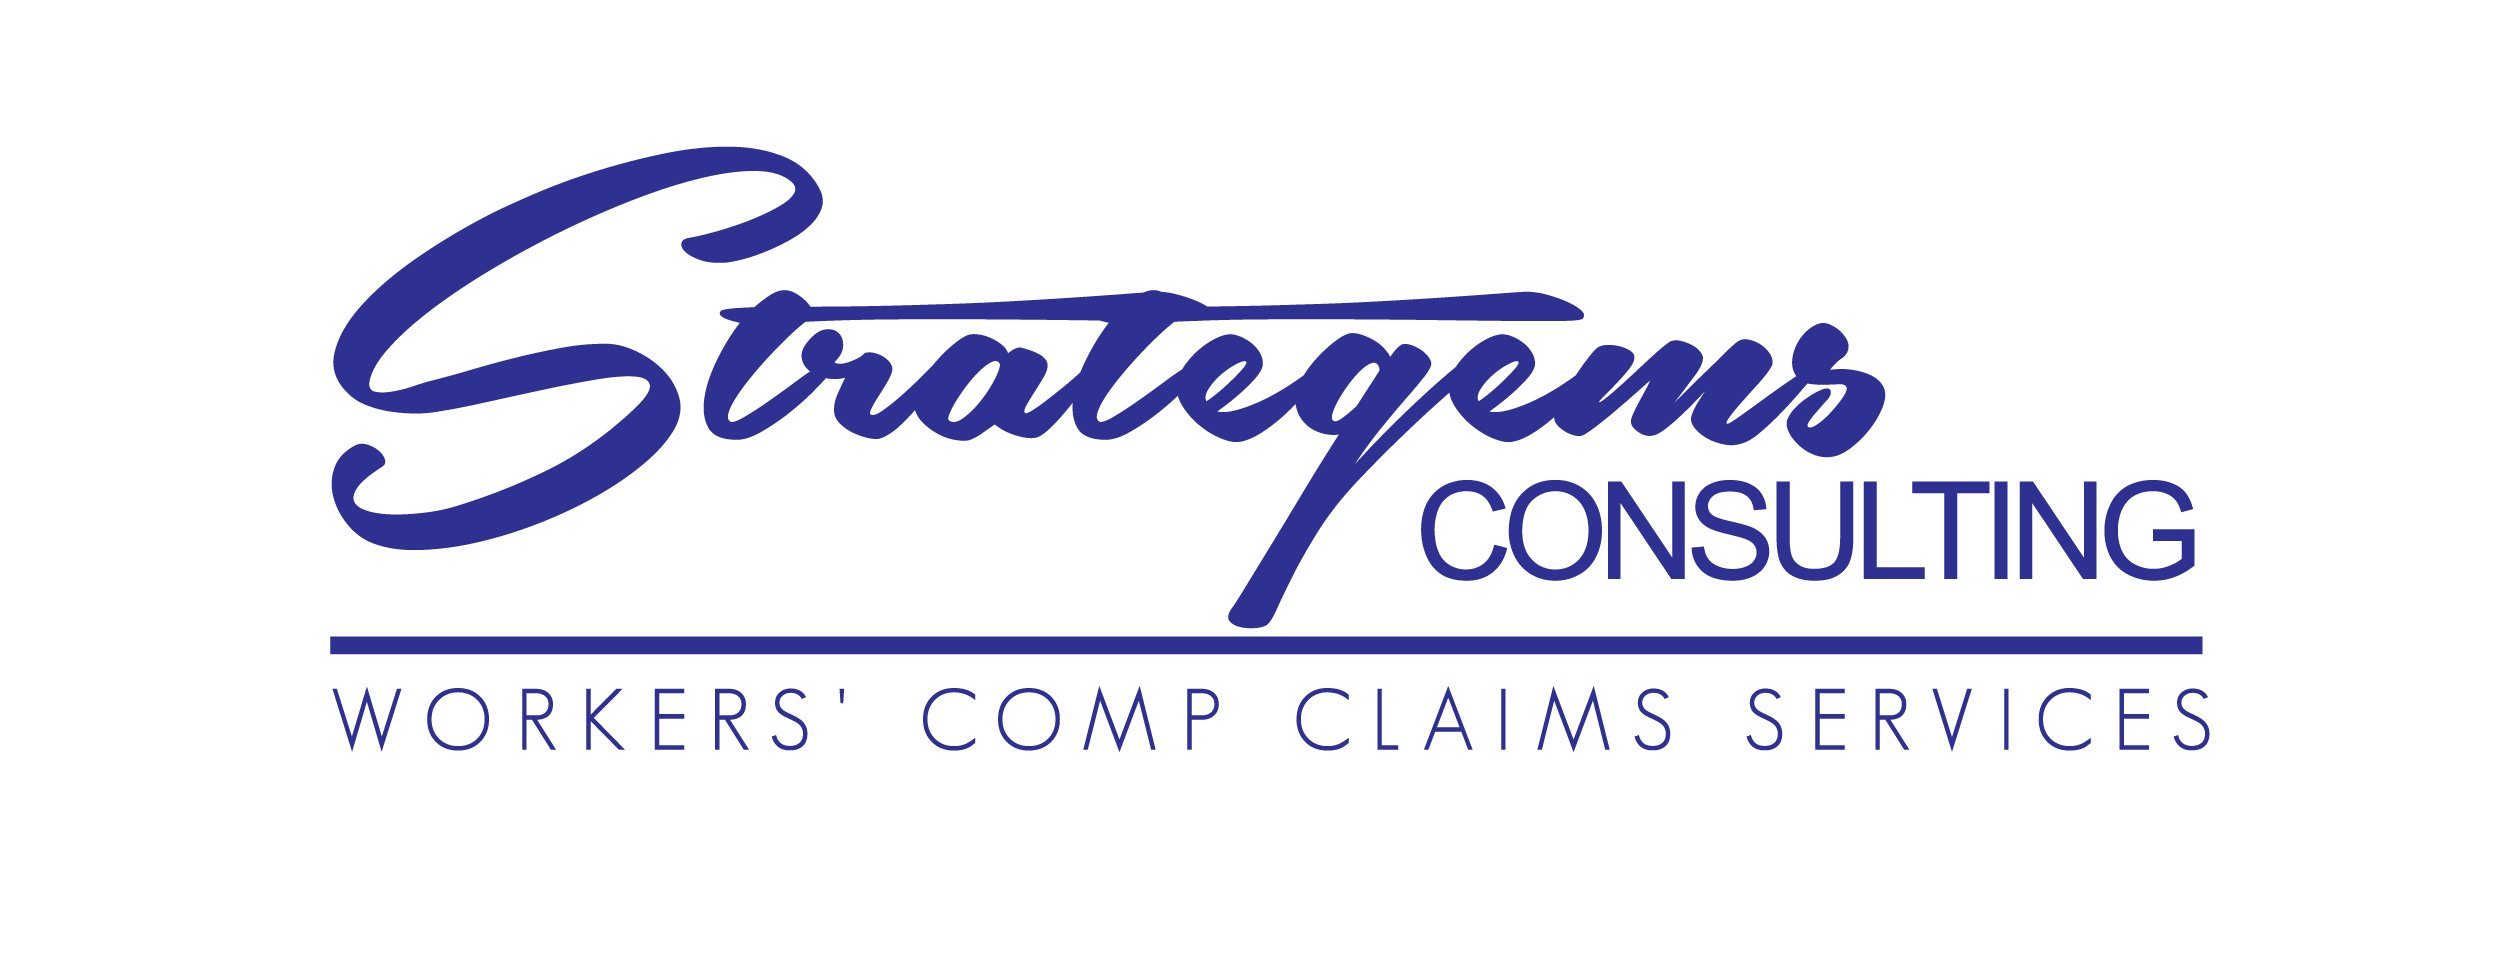 Strategems Consulting